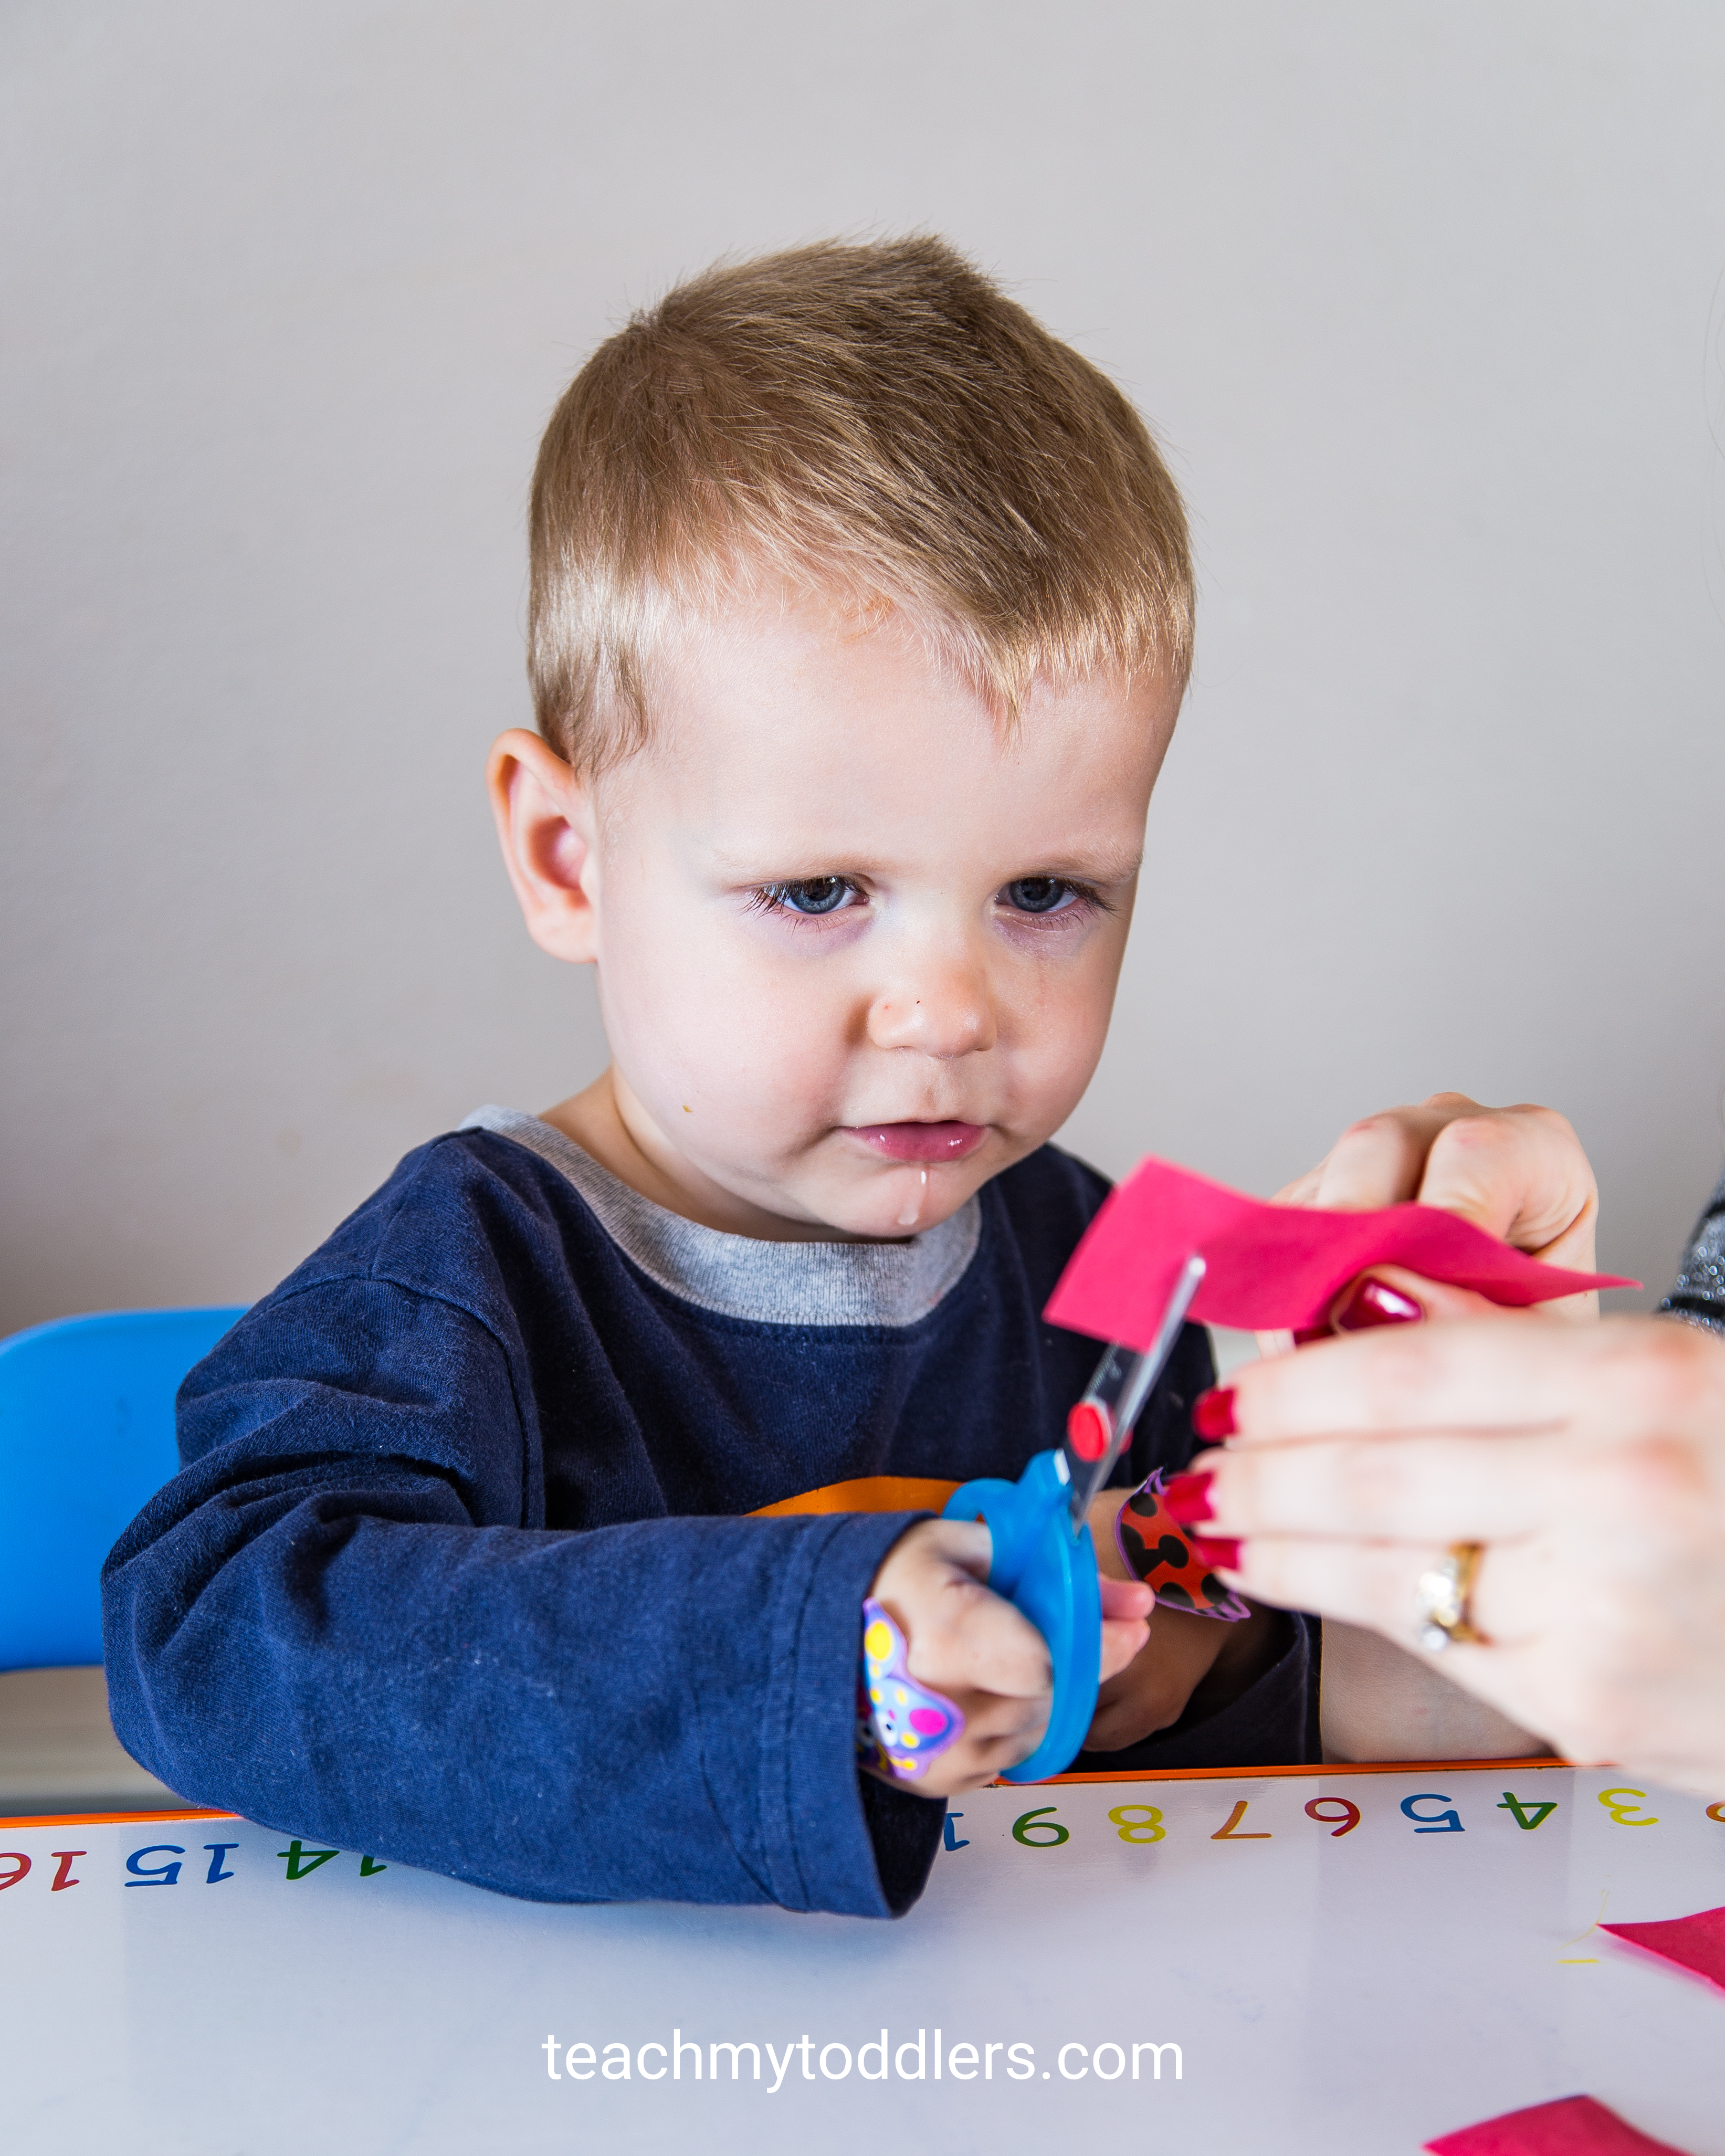 Use this fun cutting practice to teach your toddlers shapes